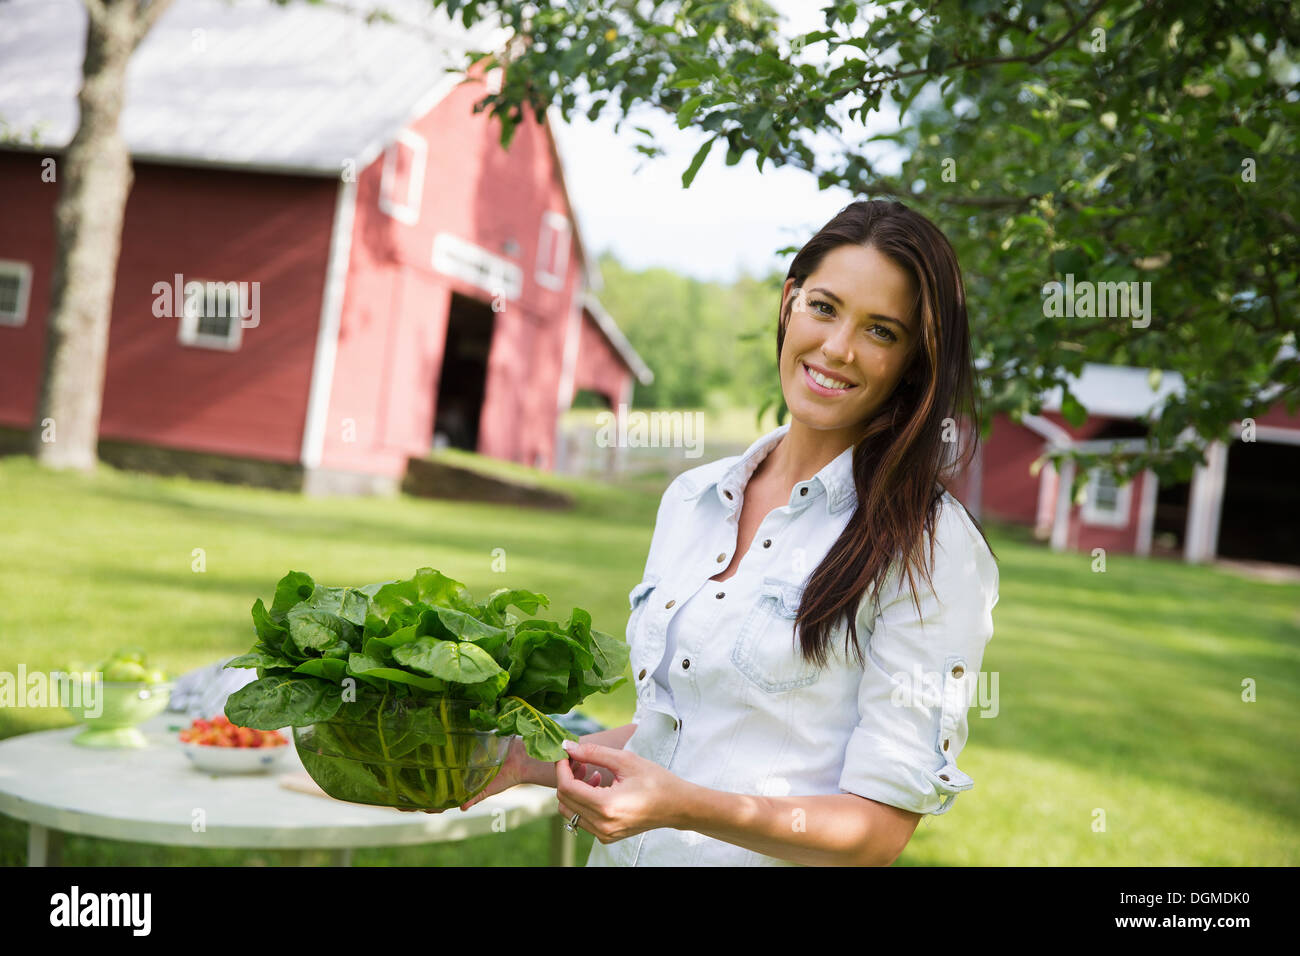 A summer family gathering farm young woman long brown hair rolled up sleeves carrying large bowl of fresh green - Stock Image